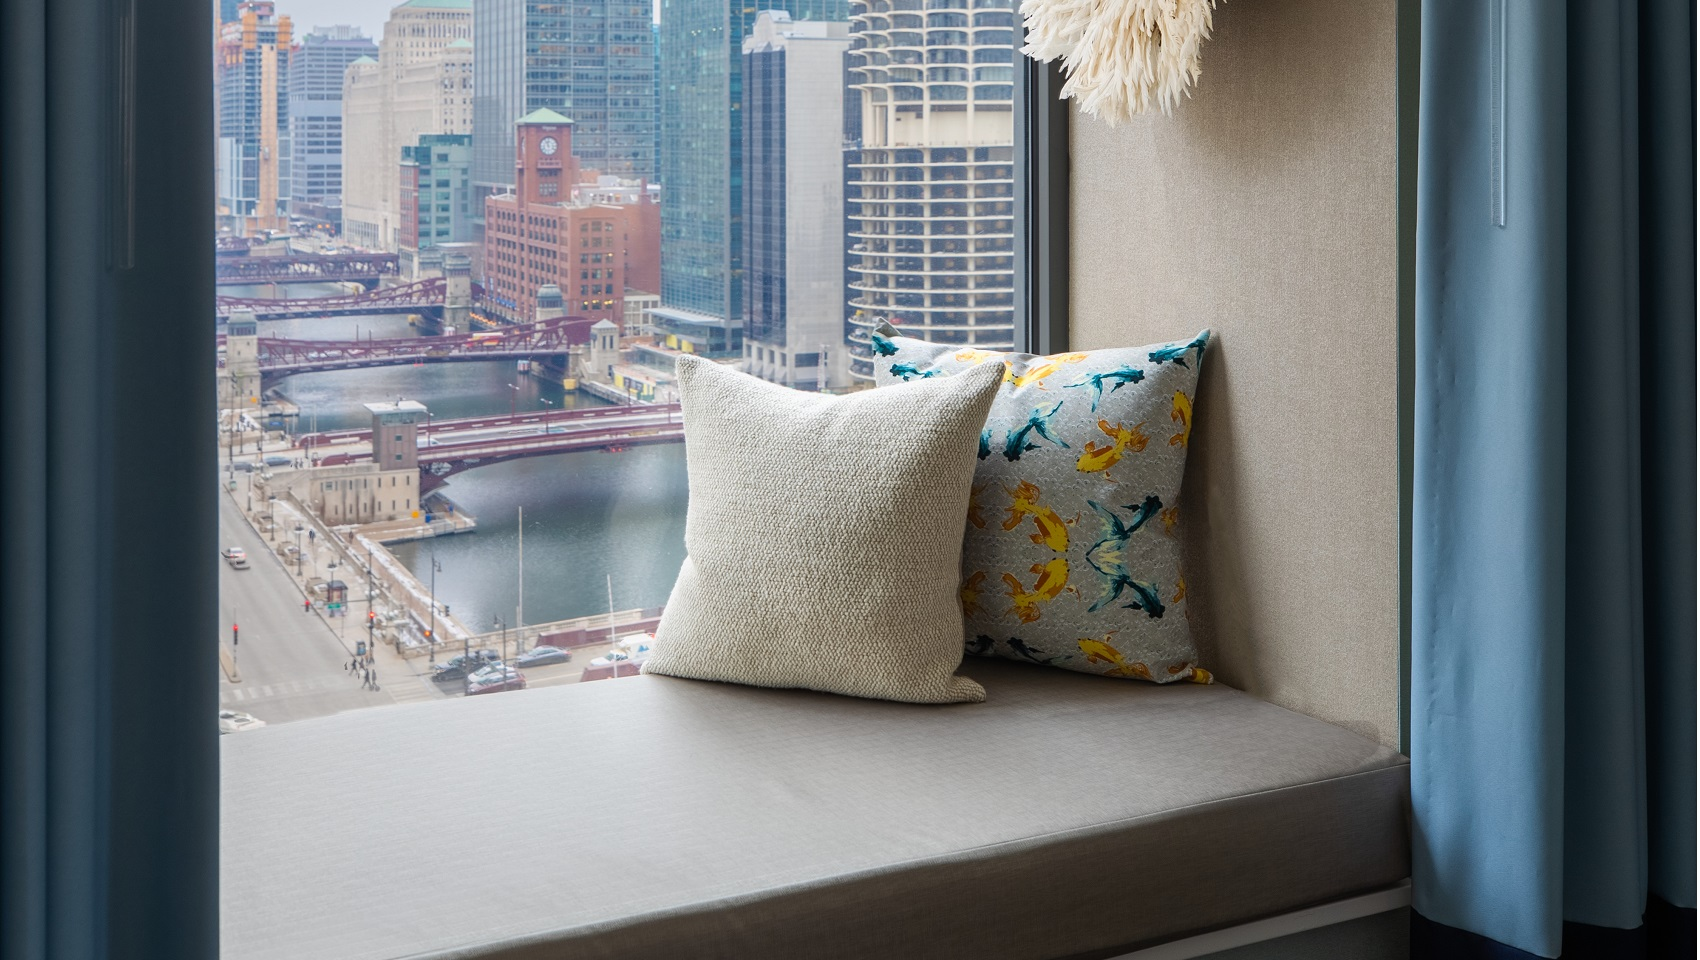 Guestroom window seat with pillows